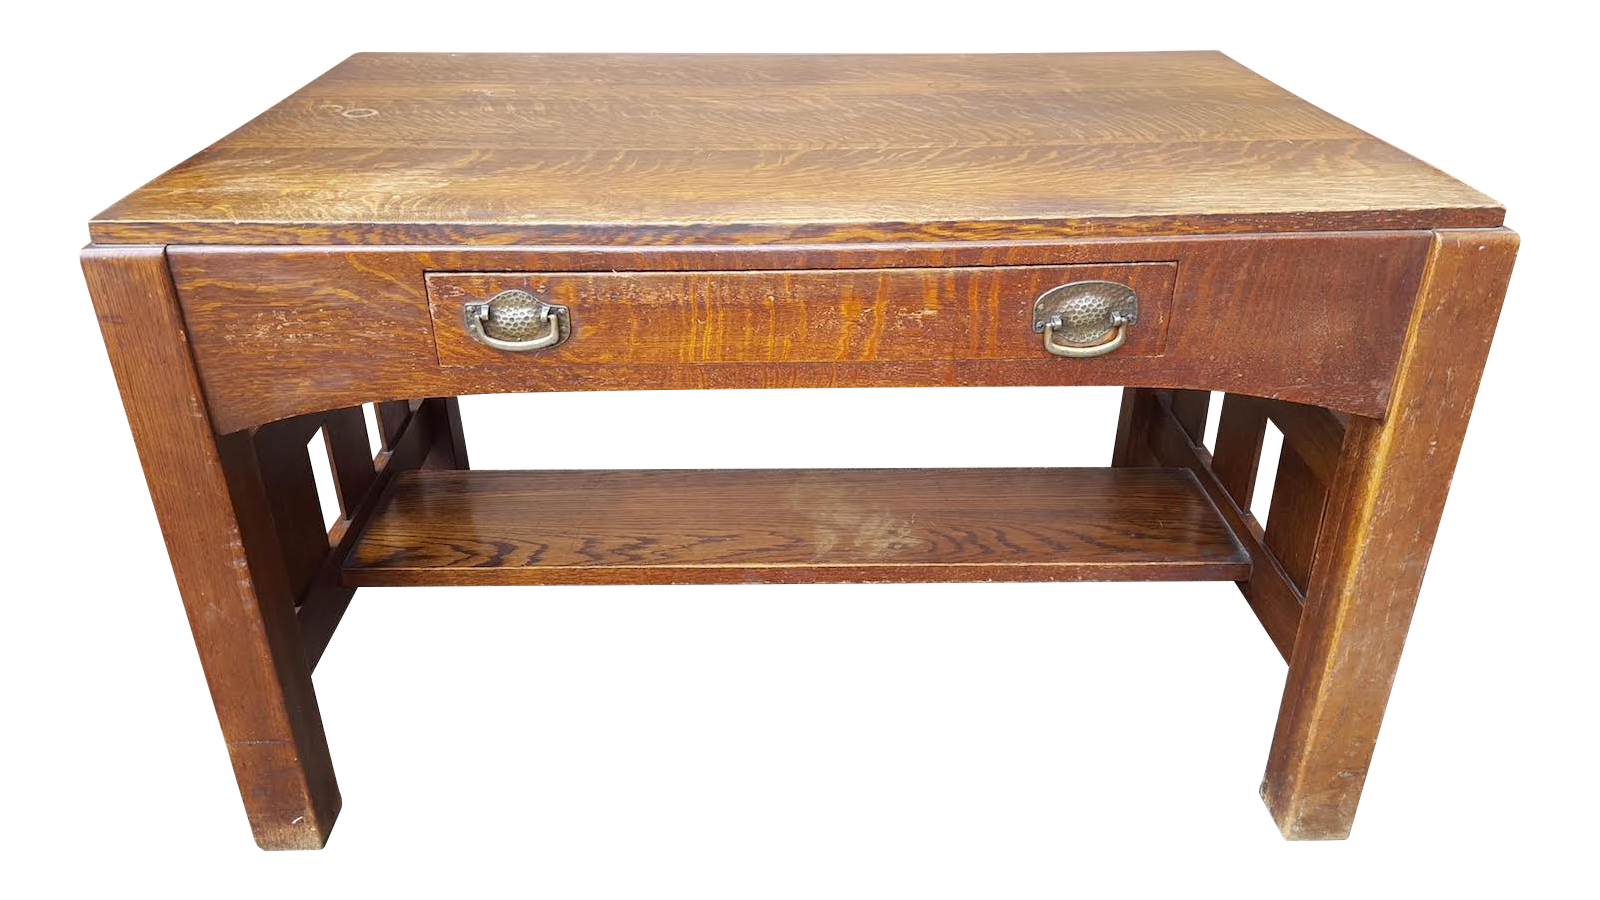 Mission oak arts crafts library table desk c1900 chairish geotapseo Gallery